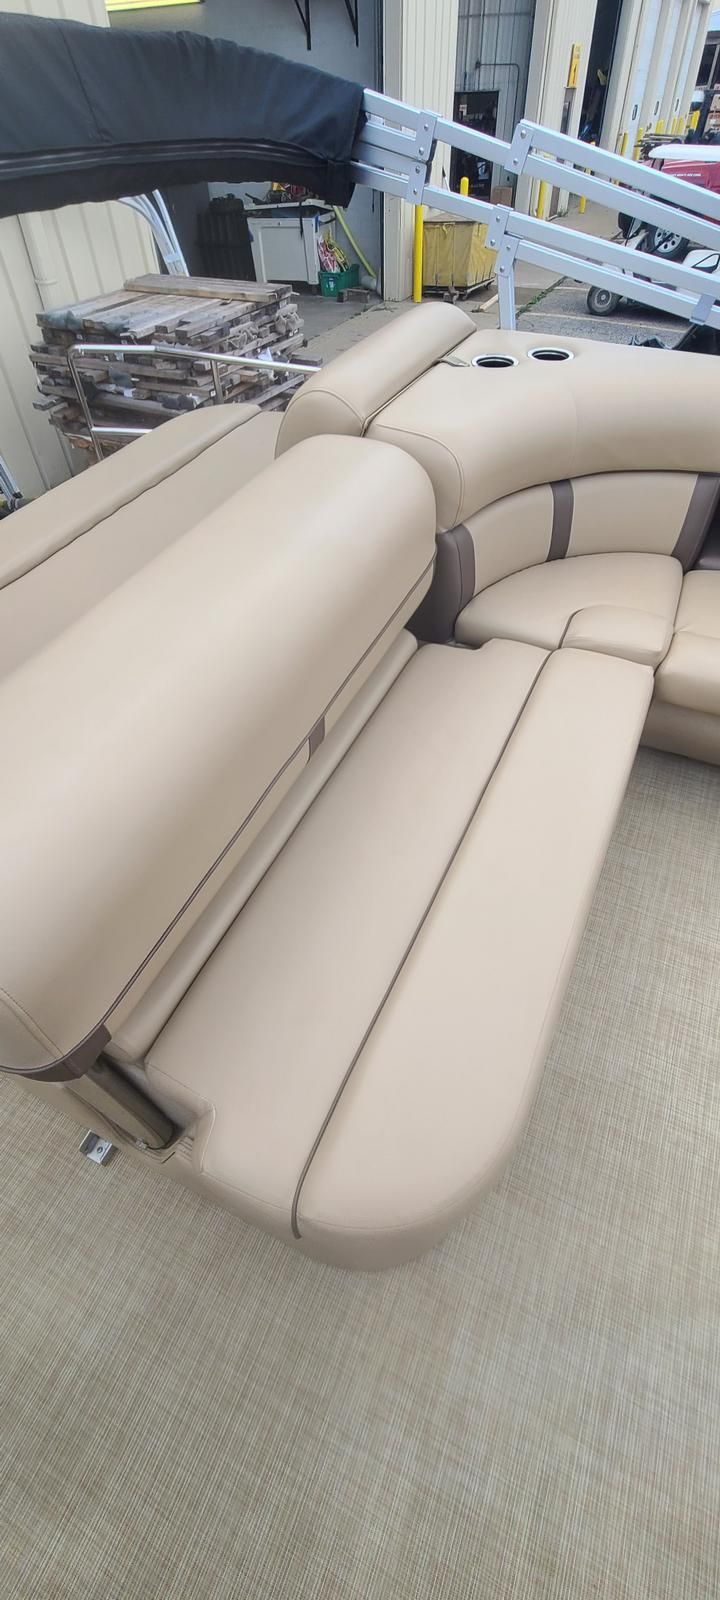 2019 Harris boat for sale, model of the boat is Cruiser 230 & Image # 6 of 10